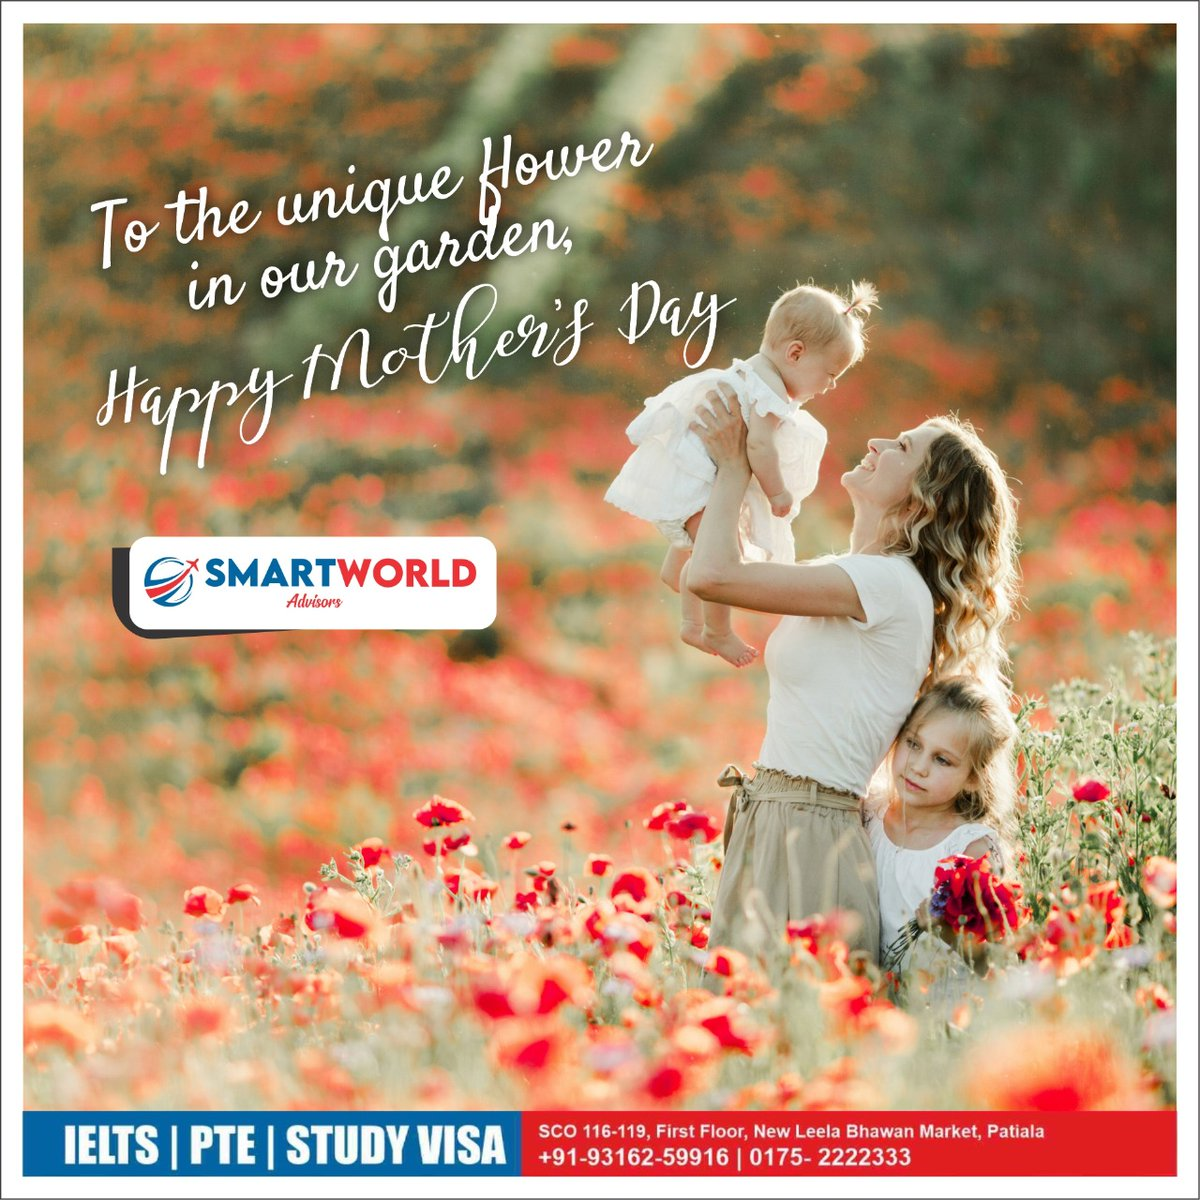 Mother  The most beautiful word on the lips of mankind #happymothersday #mothersday #mother #mothersdayspecial #motherlove #loveformother  #smartworldadvisors #ielts #PTE #studyvisa #wellqualifiedstaff #advisors  Gulzar Chahal Contact No: 93162 59916 | 0175-2222333pic.twitter.com/XqPH1o0DrI